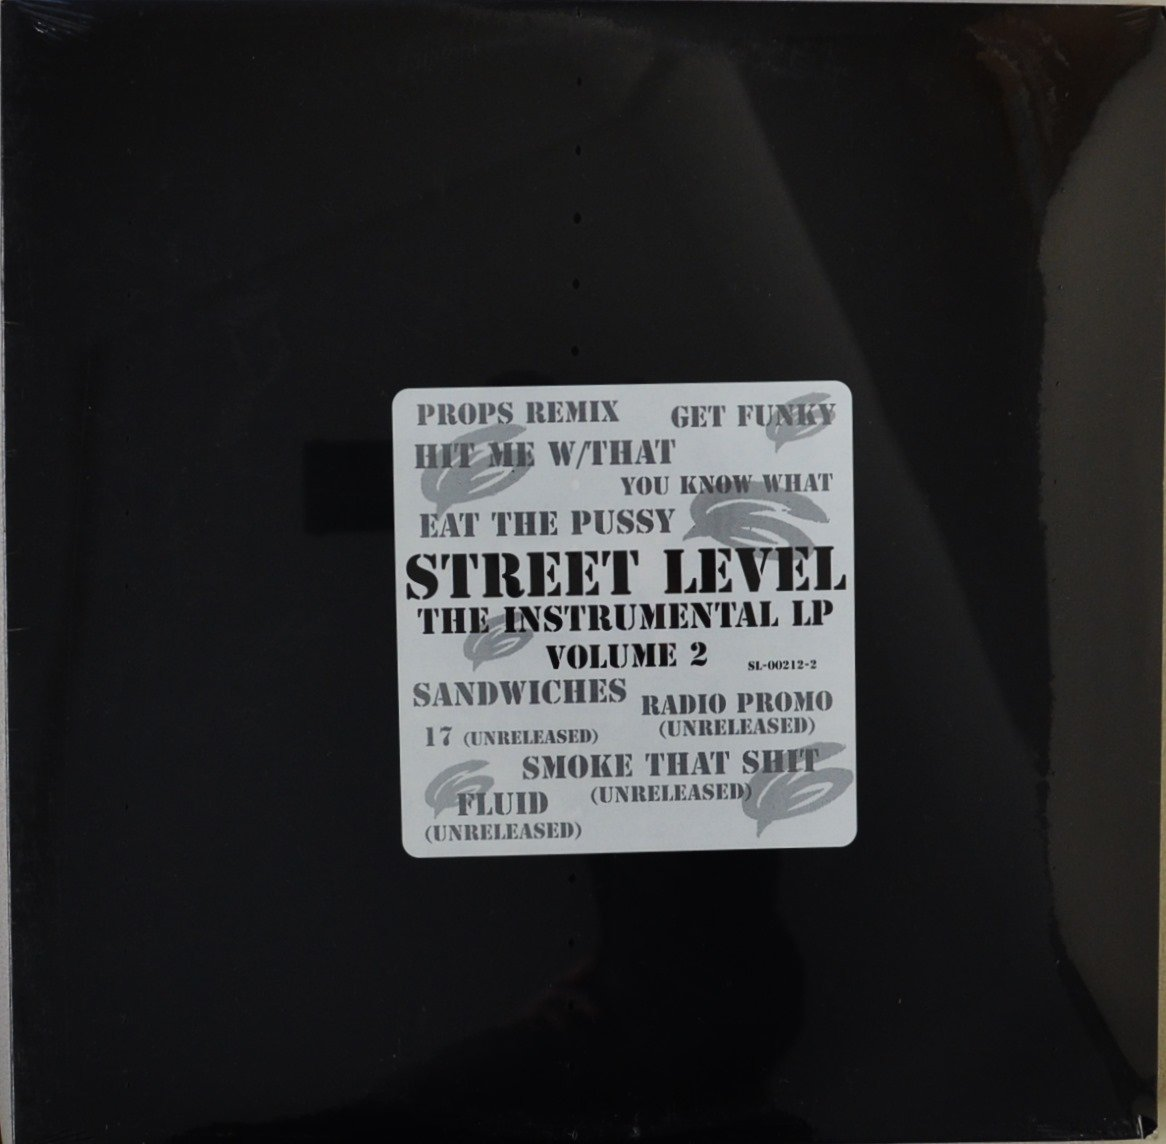 THE BEATNUTS / STREET LEVEL - THE INSTRUMENTAL LP (VOLUME 2) (1LP)